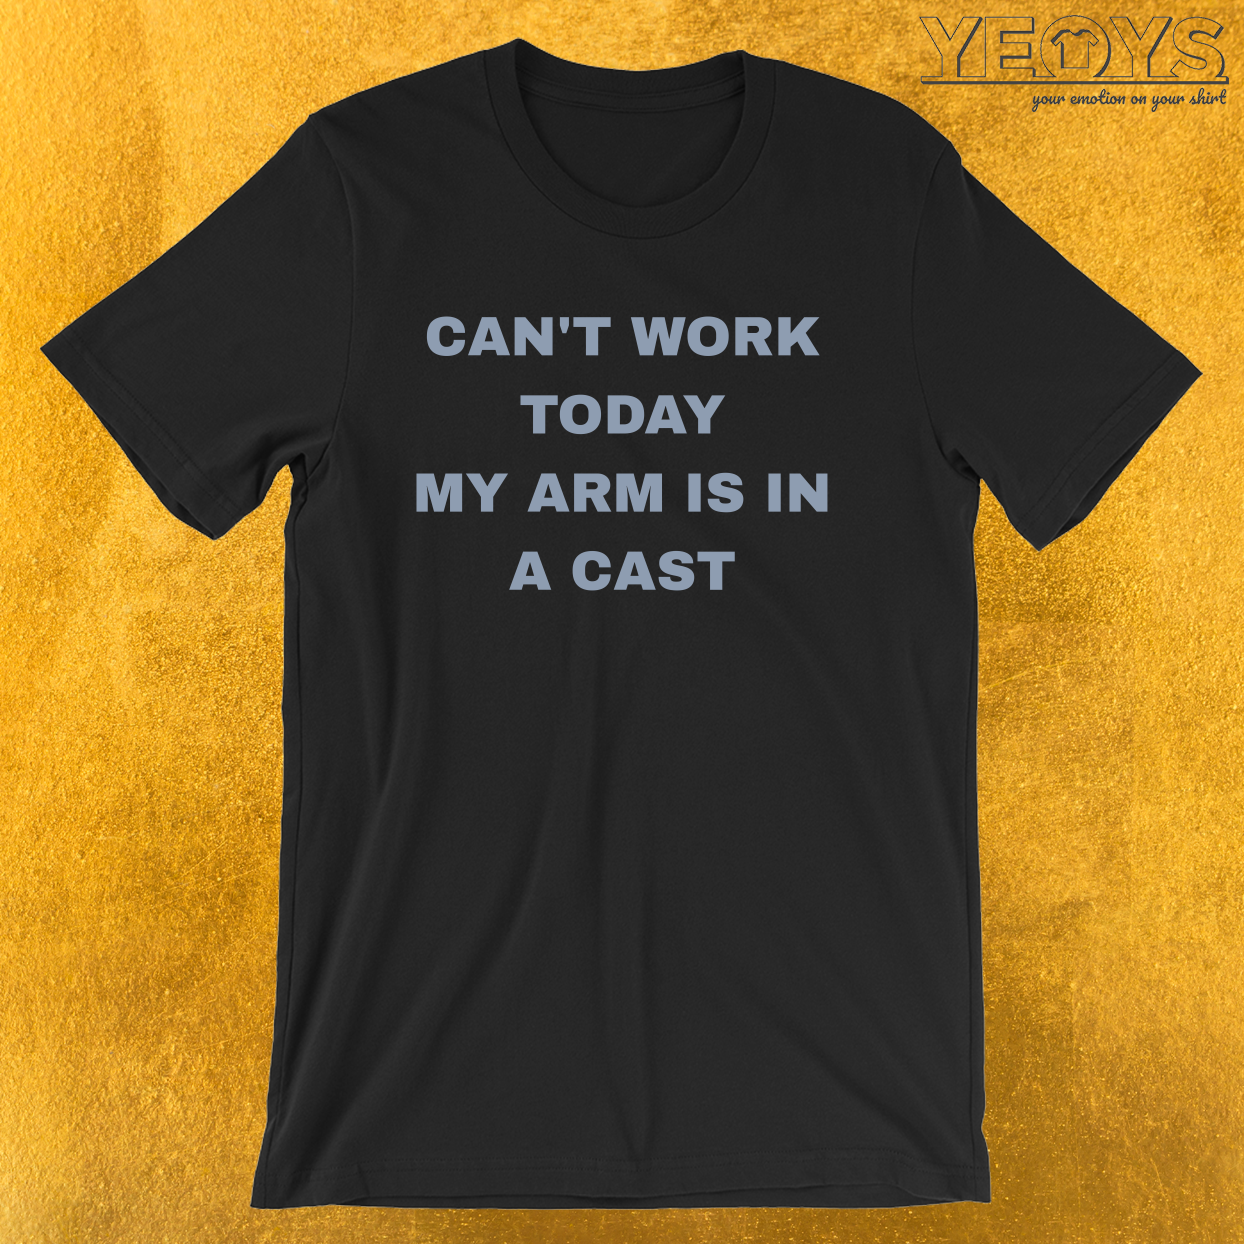 Can't Work Today My Arm Is In A Cast – Funny Fishing Tee